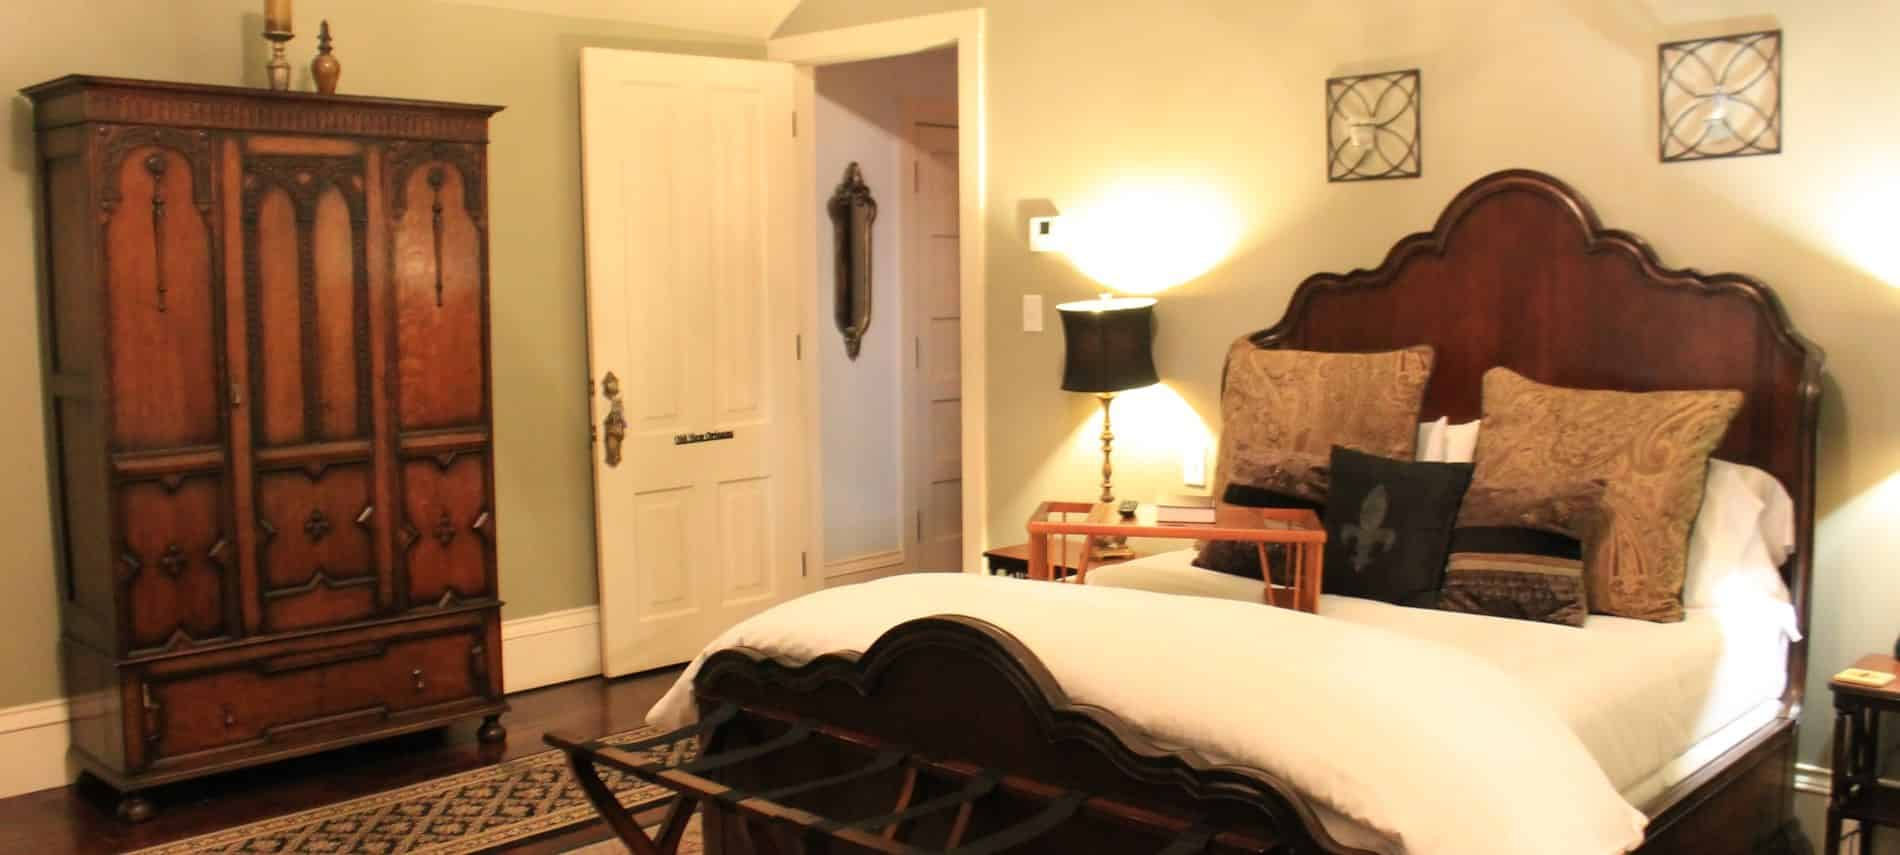 New Orleans guest room with light green walls, scalloped wood bed with white bedding, nightstand with lamps and tall armoire